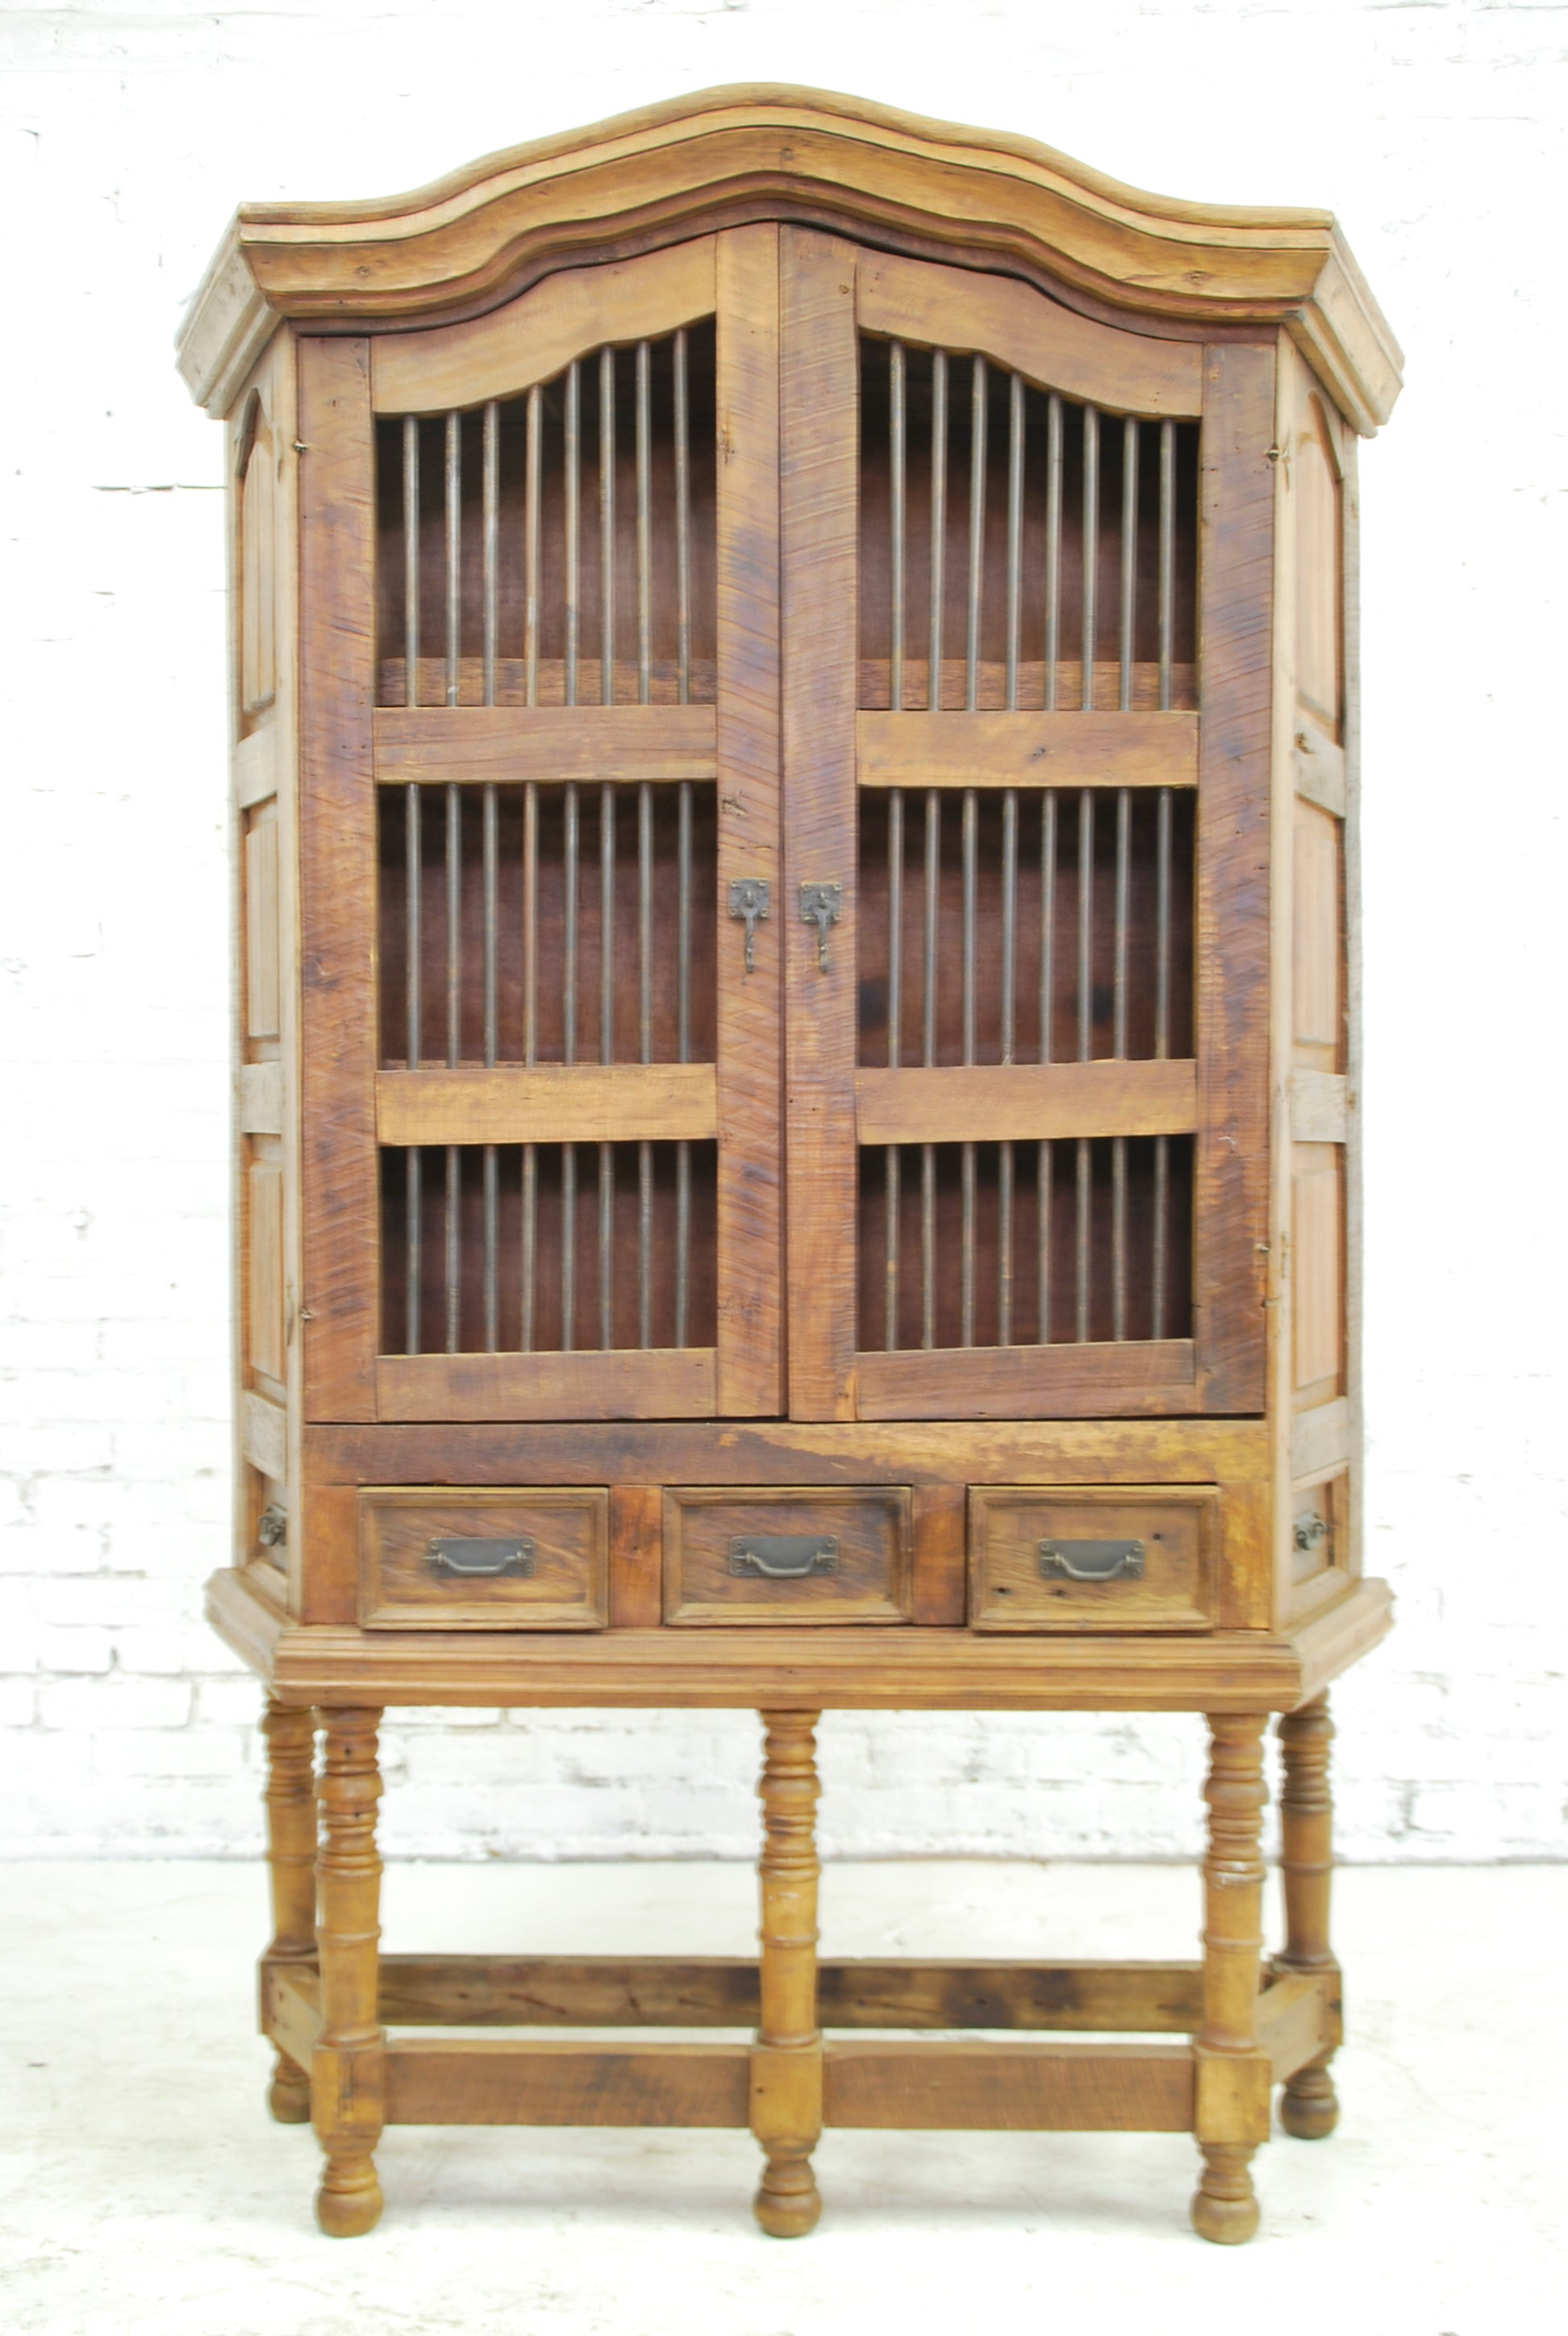 Barn Wood Armoire - Barred Display AR-027